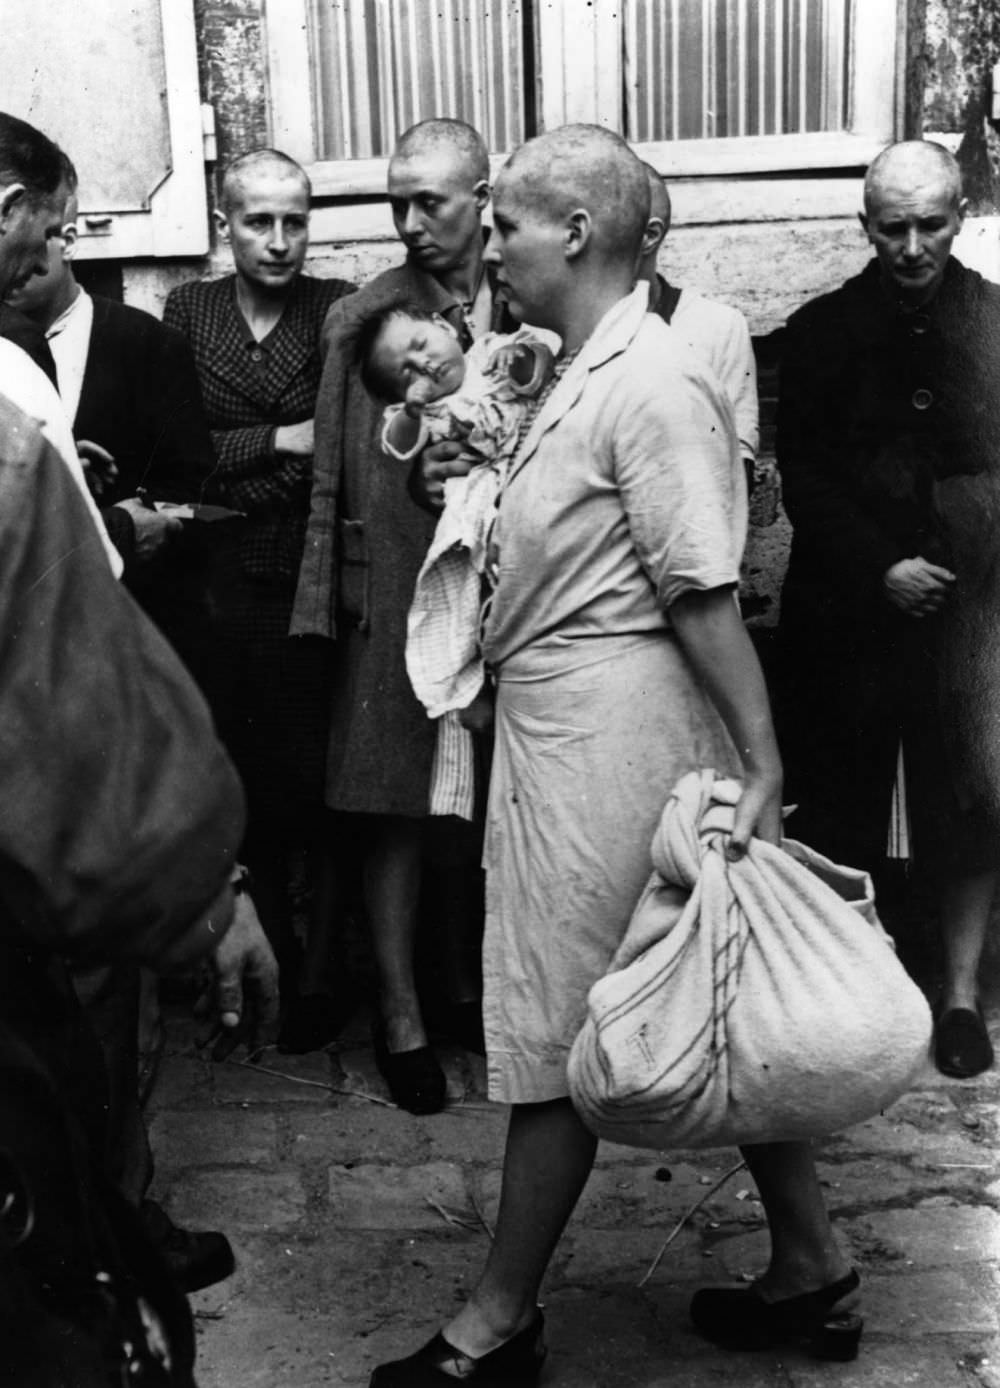 A French woman collaborator and her baby, whose father is German, tries to return to her home followed by a throng of taunting townspeople after having her head shaven following the capture of Chartres by the Allies, August 1944. It appears that she is passing some women who suffered a similar fate.